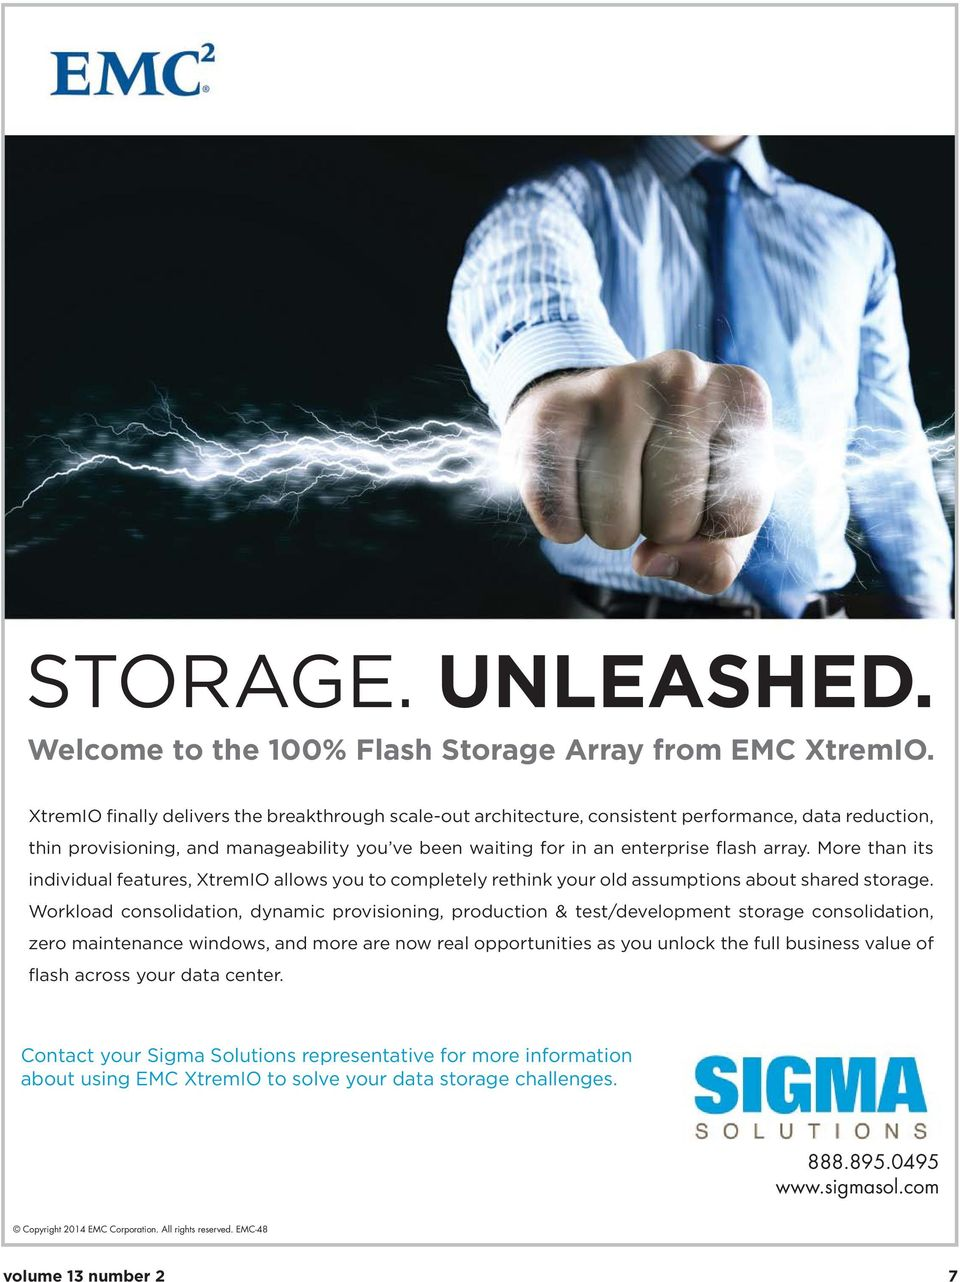 More than its individual features, XtremIO allows you to completely rethink your old assumptions about shared storage.